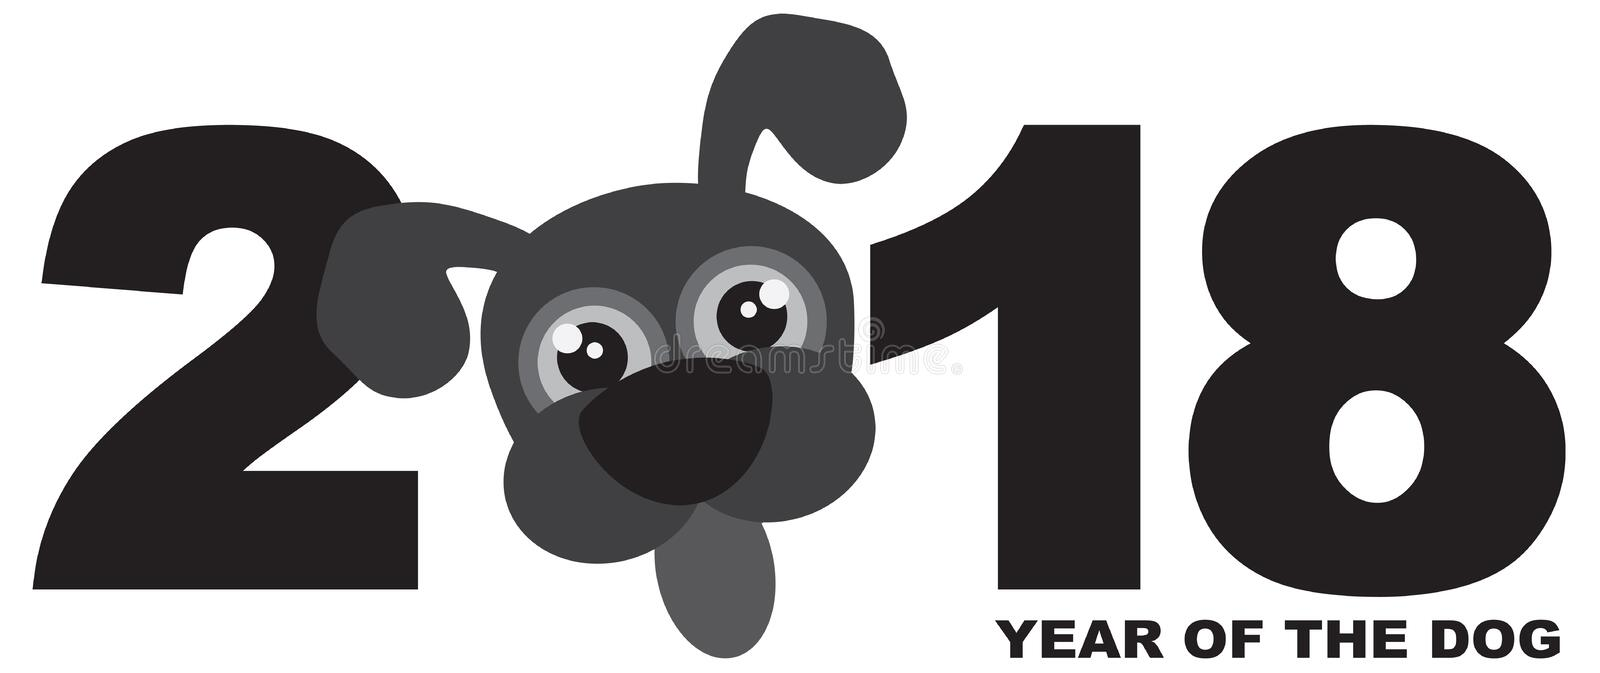 Download 2018 Chinese New Year Dog Grayscale Vector Illustration Stock Vector - Illustration of grayscale, cute: 91341838